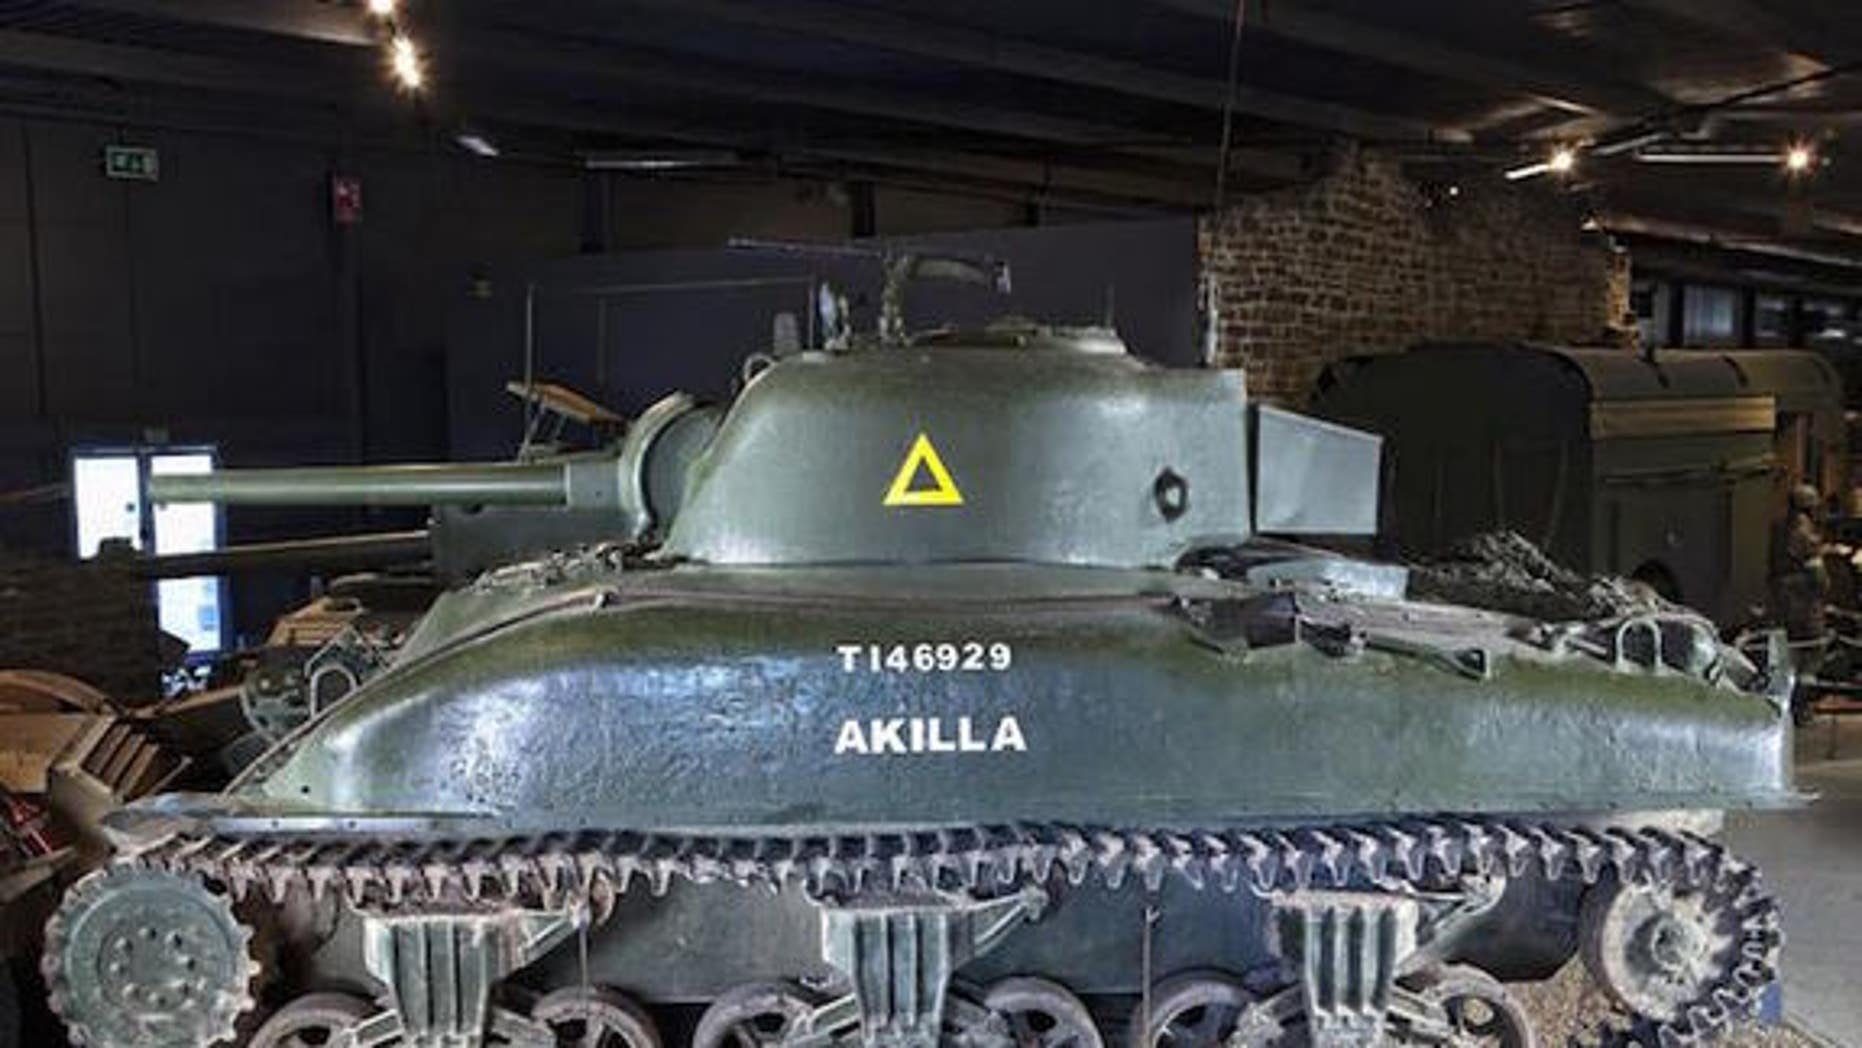 A Canadian variant of the M4 Sherman tank, which was recently sold at auction.